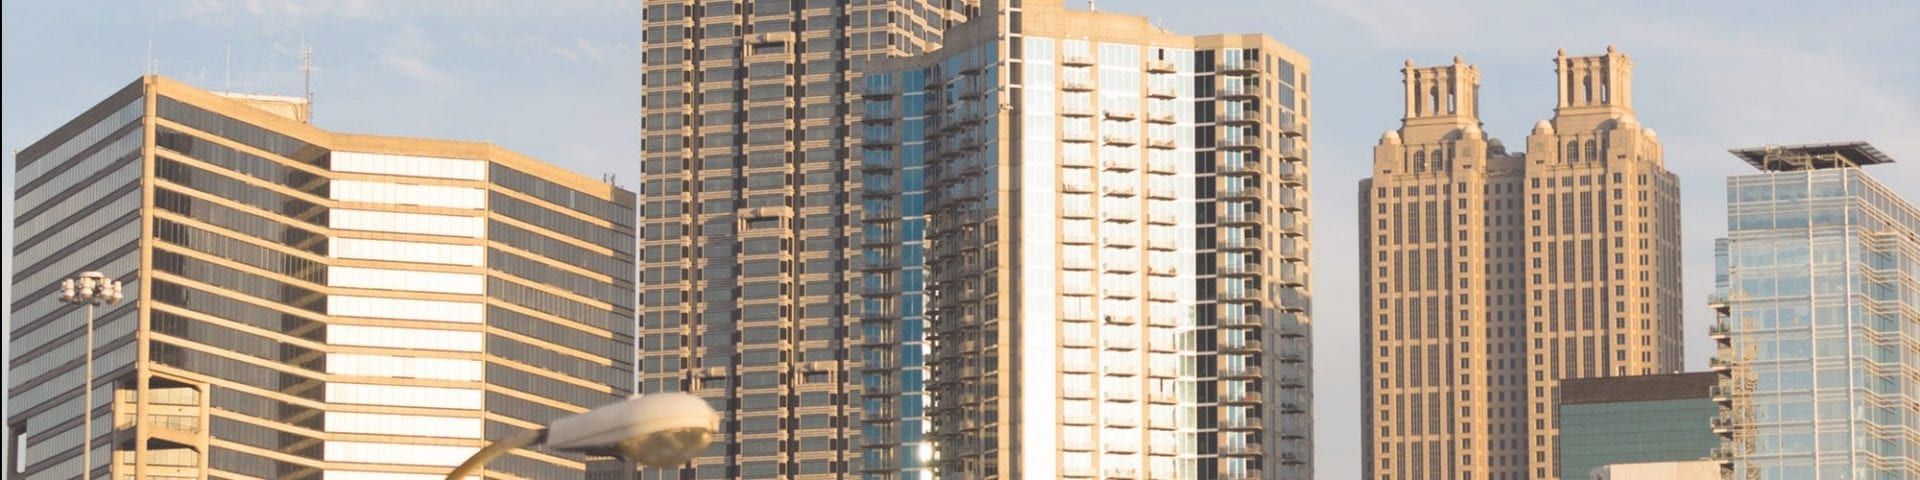 Atlanta Indoor Air Quality (IAQ) Surveys in High-Rise Commercial/Residential Buildings